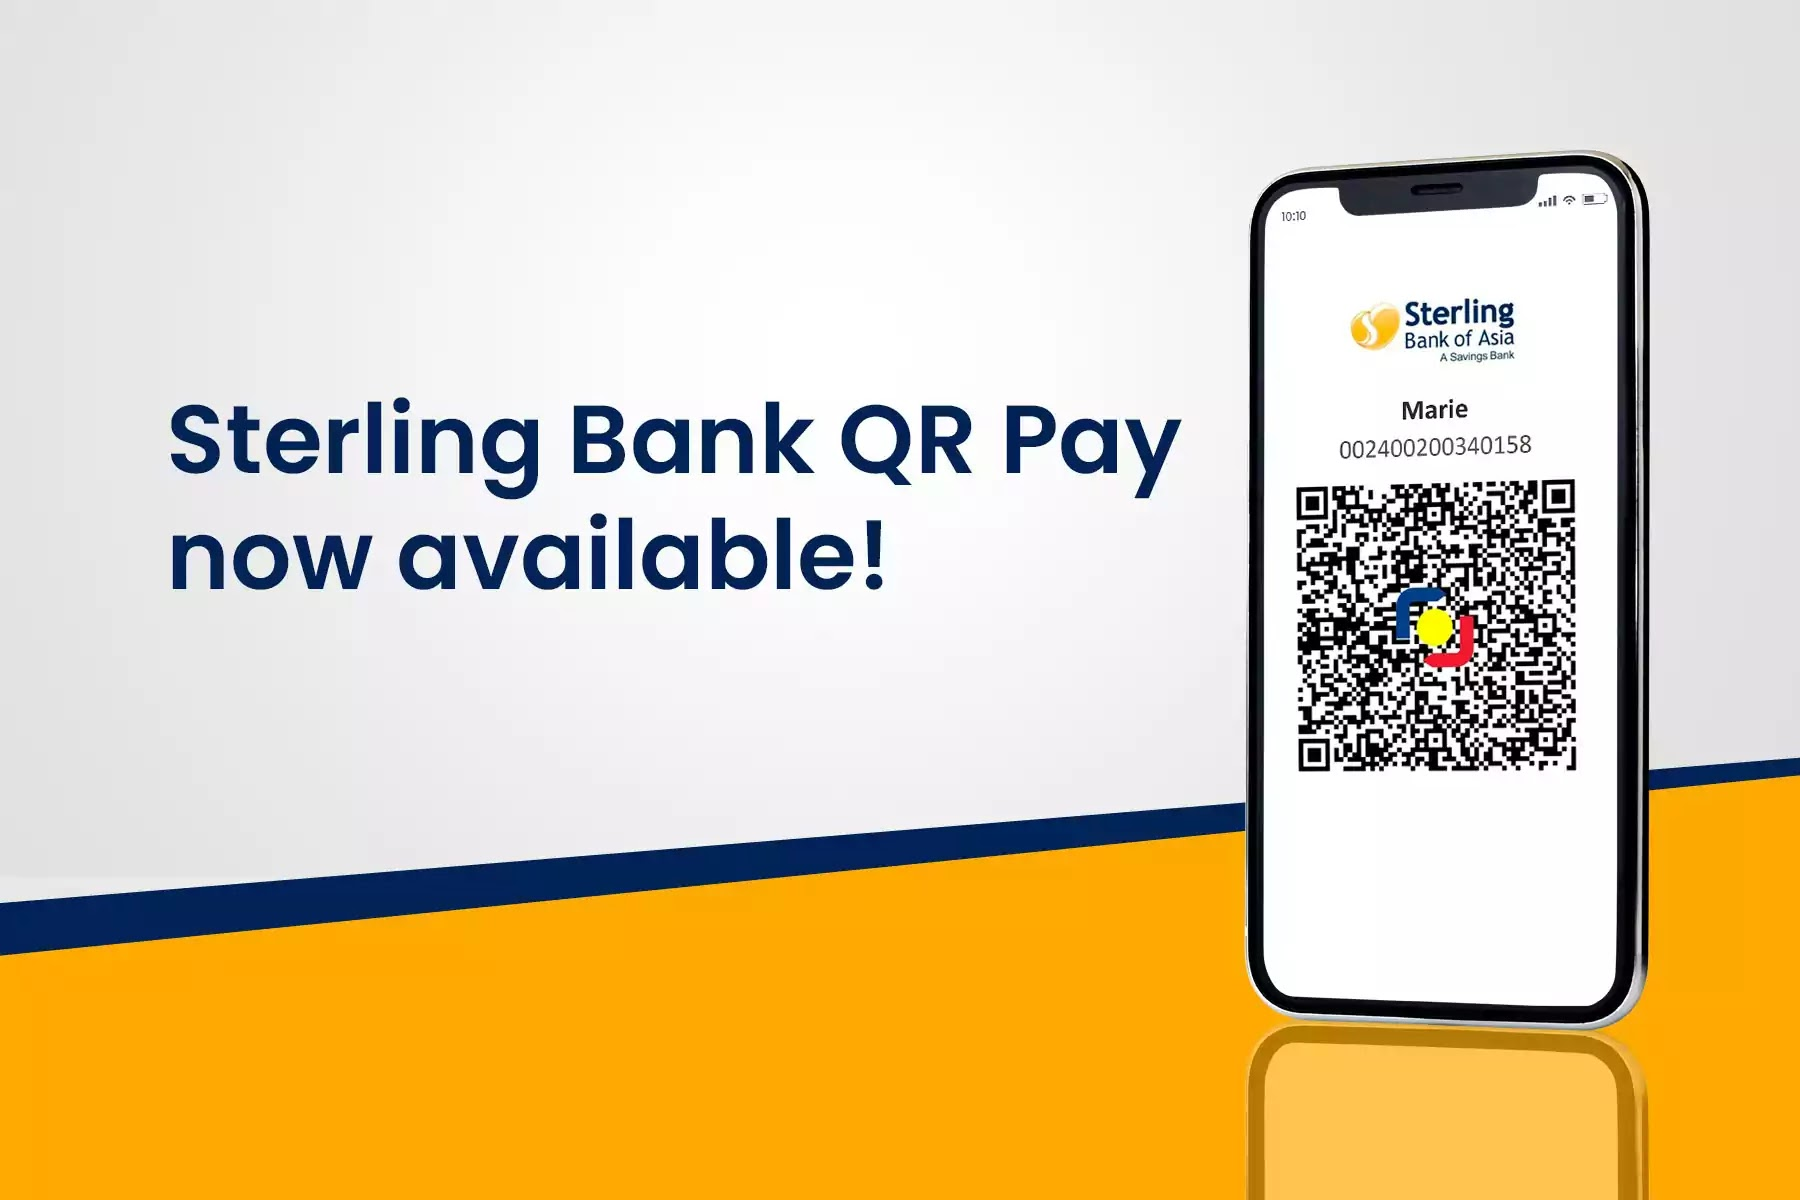 Sterling Bank QR Pay